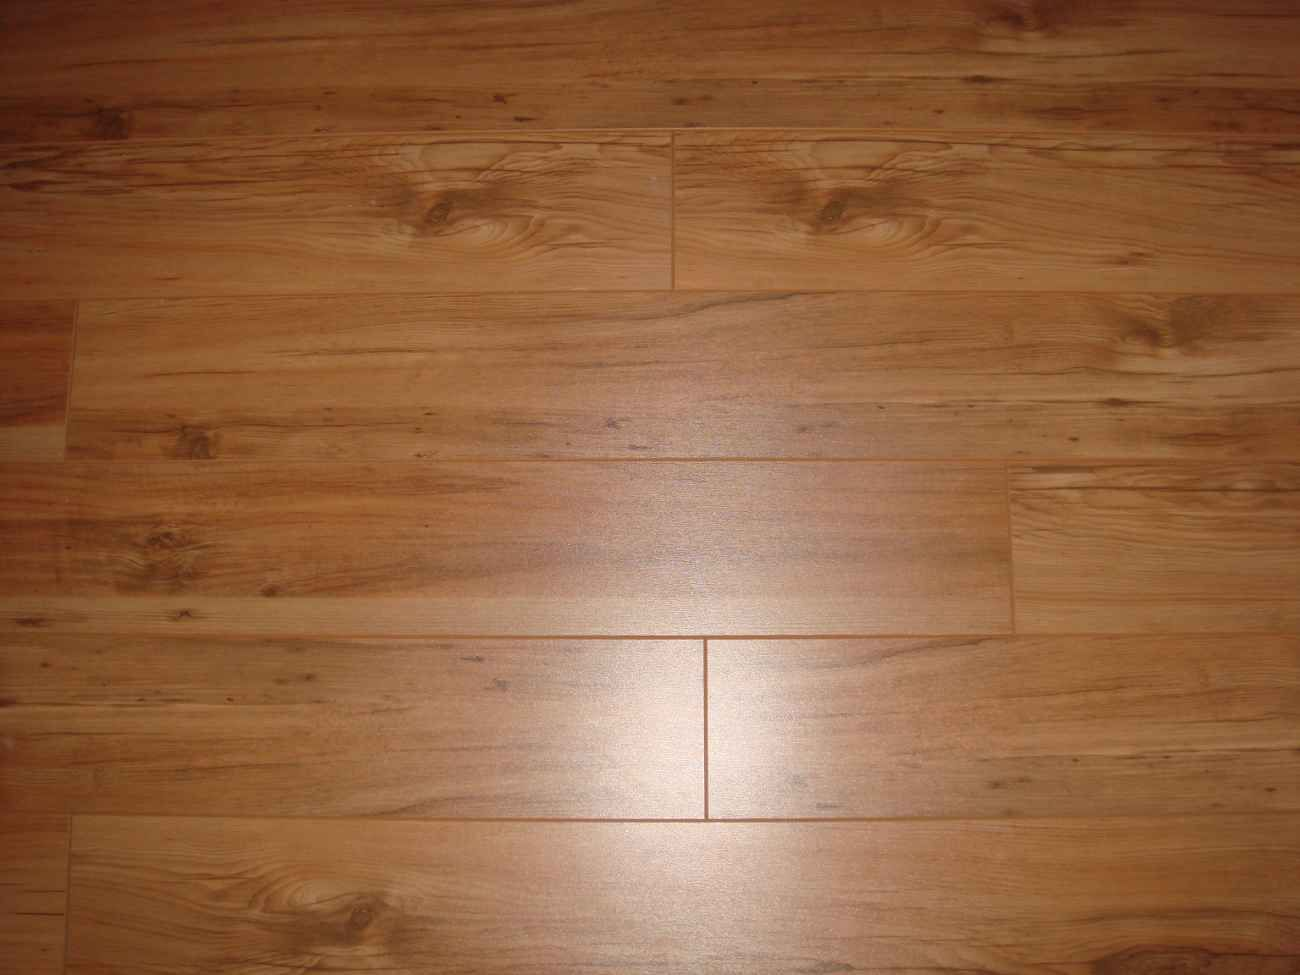 ceramic tile that looks like wood | Wooden Ceramic Tile Floors | Feel The  Home - Top 25+ Best Wood Like Tile Ideas On Pinterest Flooring Ideas